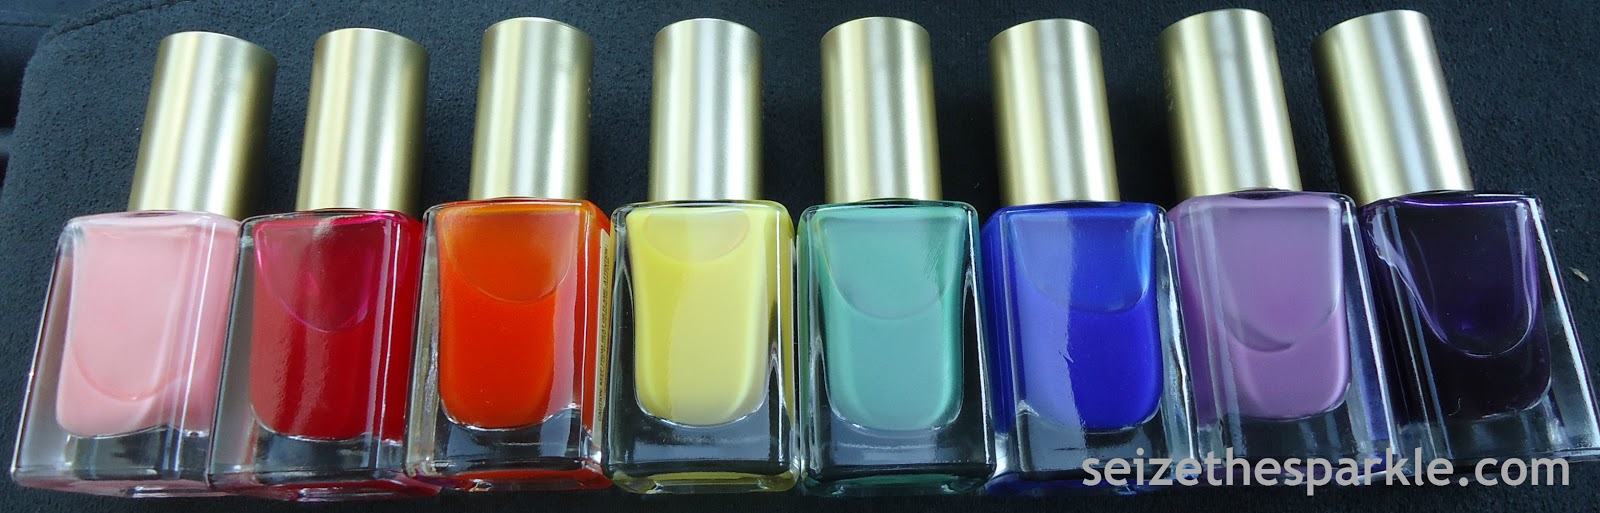 L\'Oreal Miss Candy Jelly Nail Polish (Spring 2013) - Seize the Sparkle